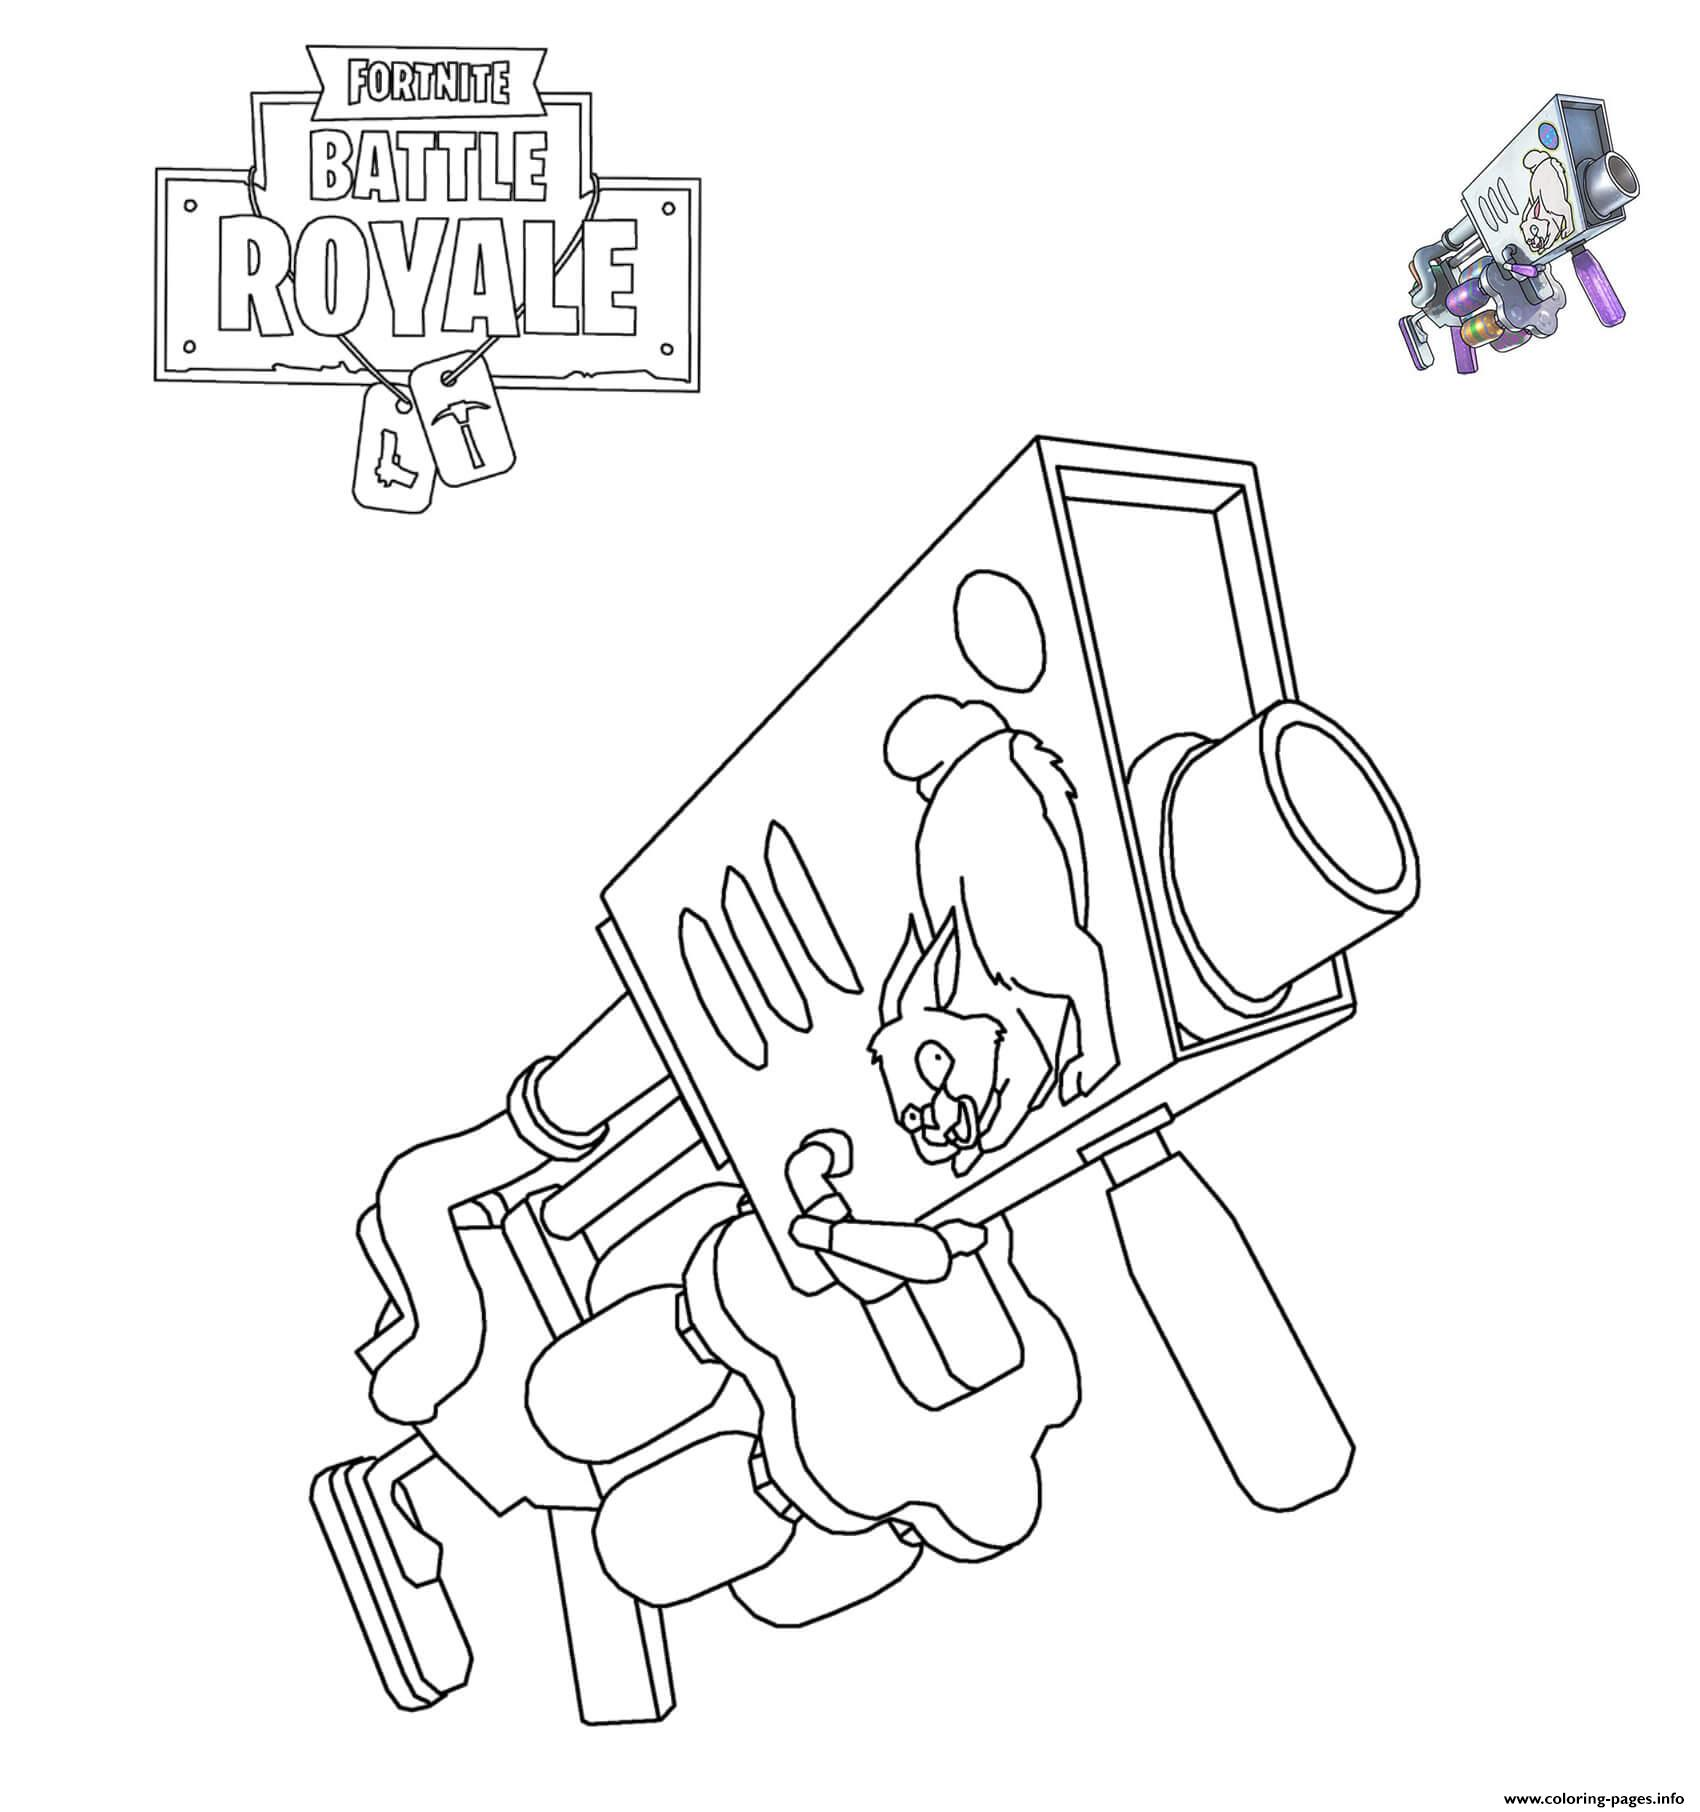 Fortnite Egg Launcher Coloring Pages Printable